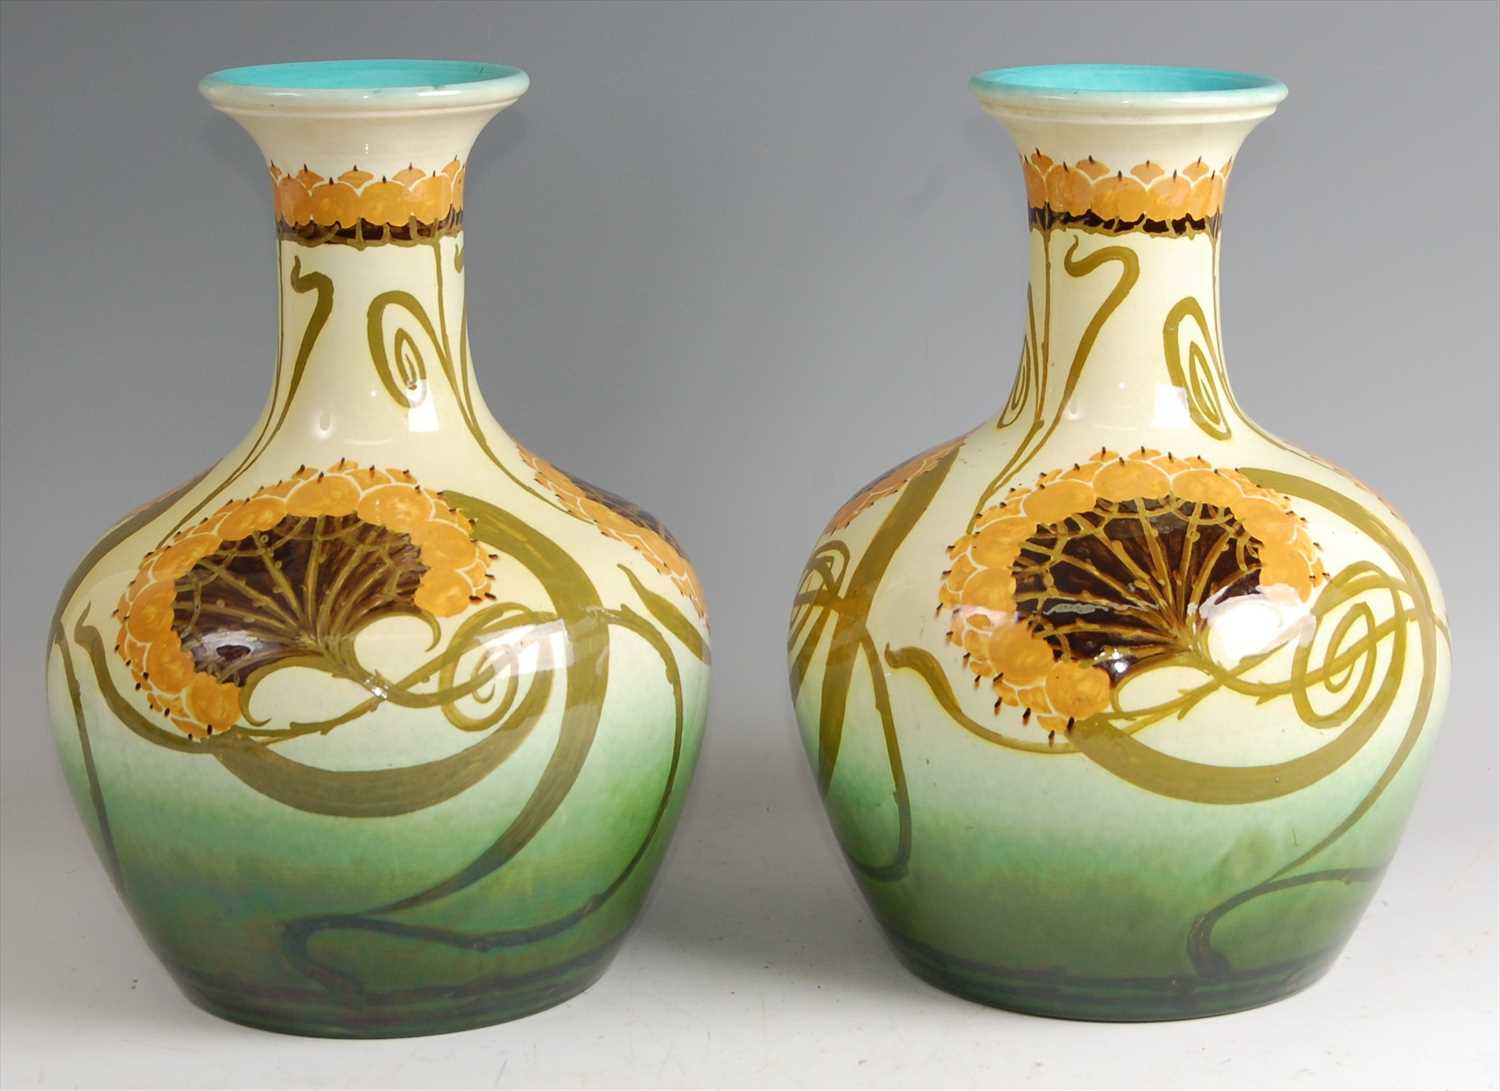 Lot 43-A pair of large Art Nouveau pottery vases, in...